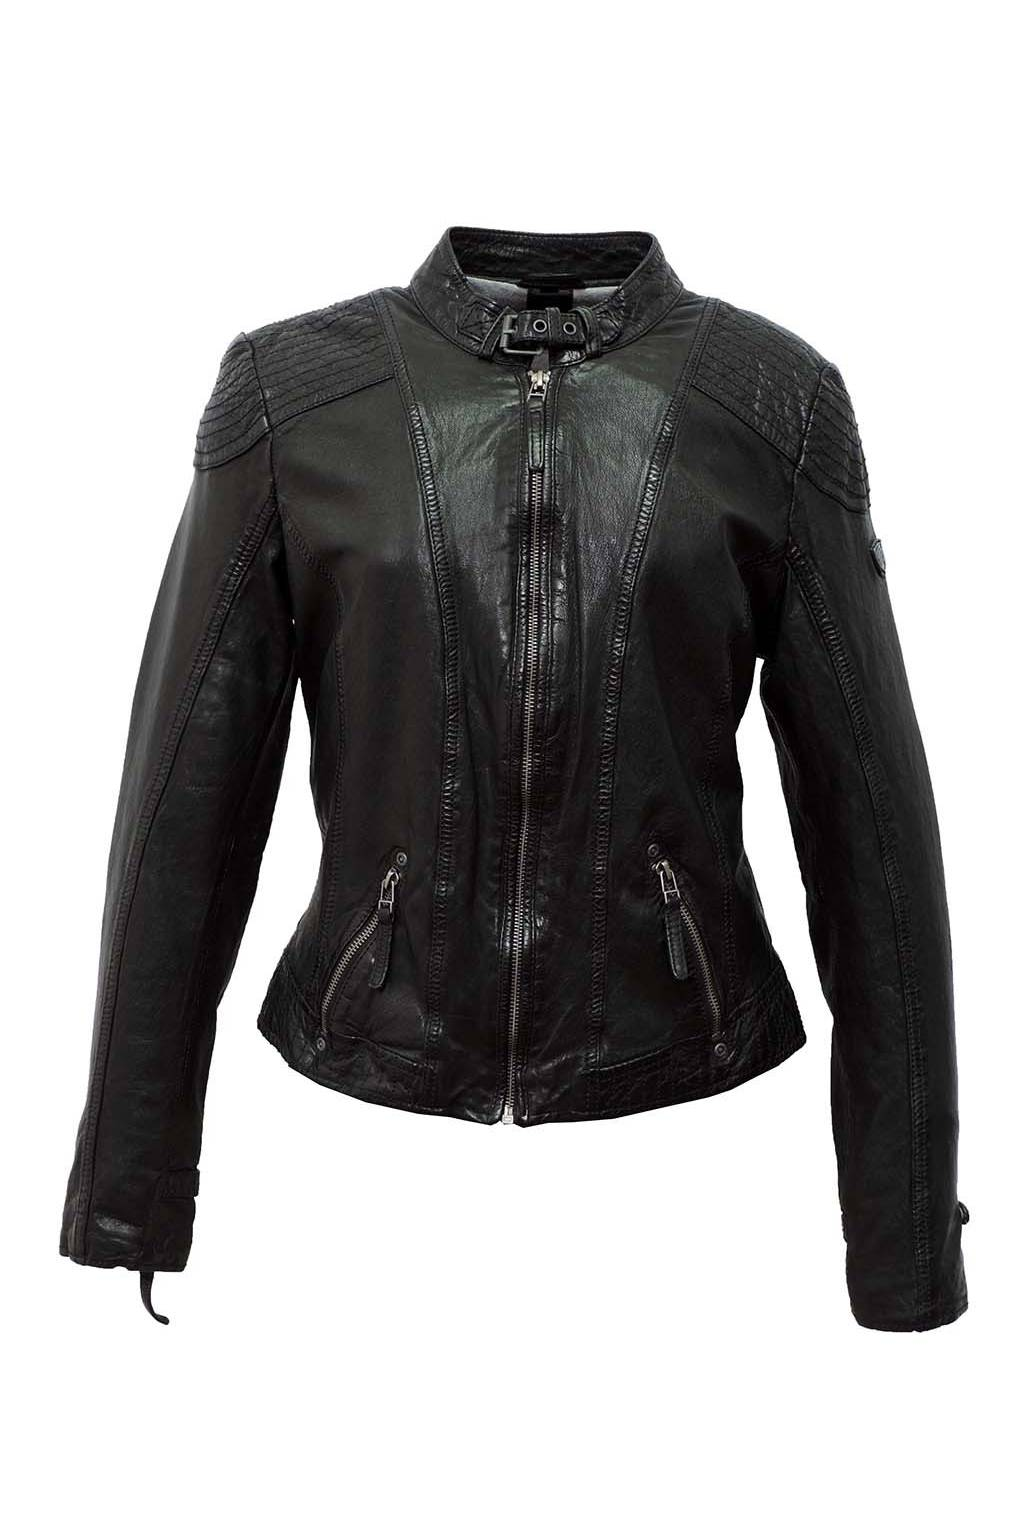 gipsy girls pacey black jacket